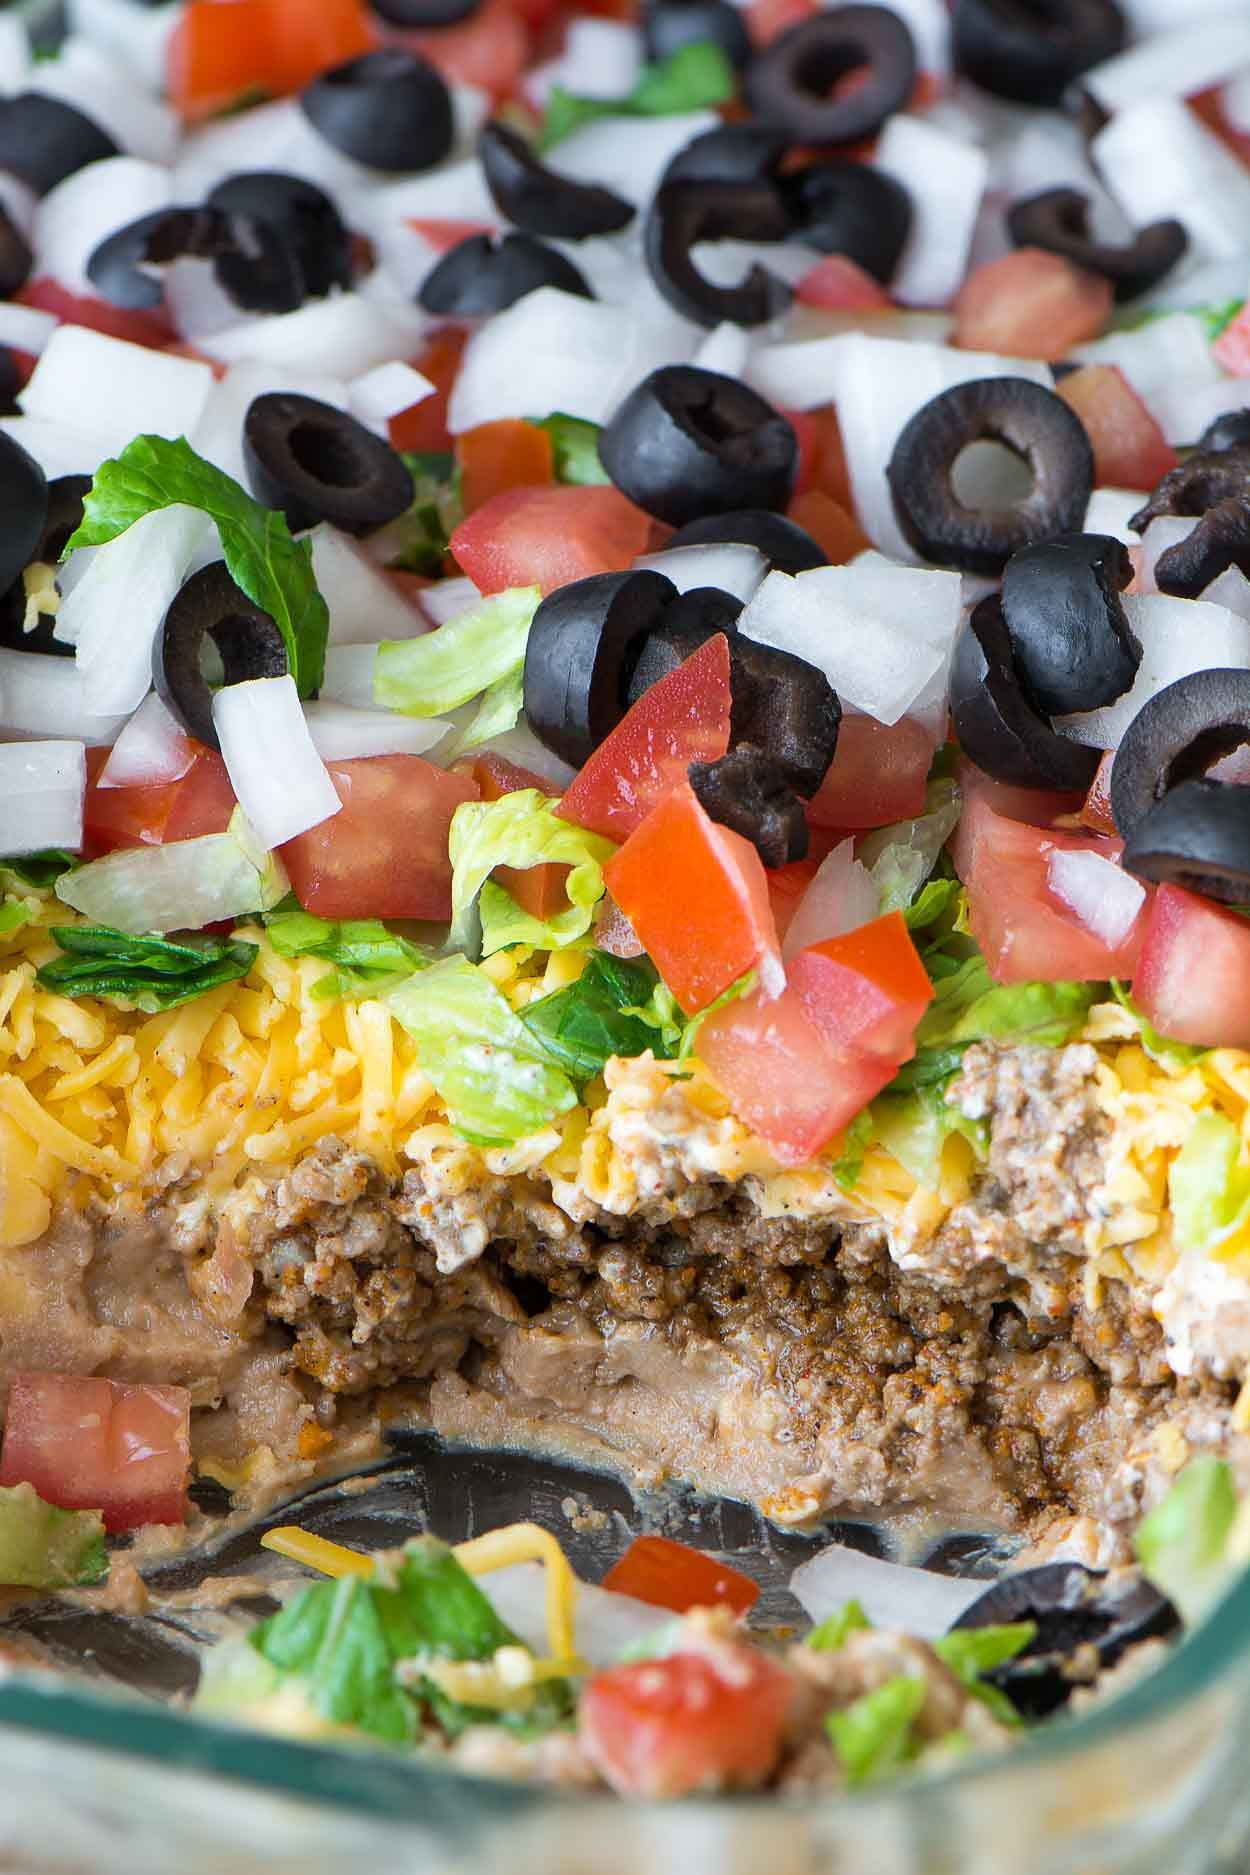 How To Make The Best 7 Layer Dip Simple Revisions Recipe Layered Taco Dip Layered Dip Recipes 7 Layer Taco Dip